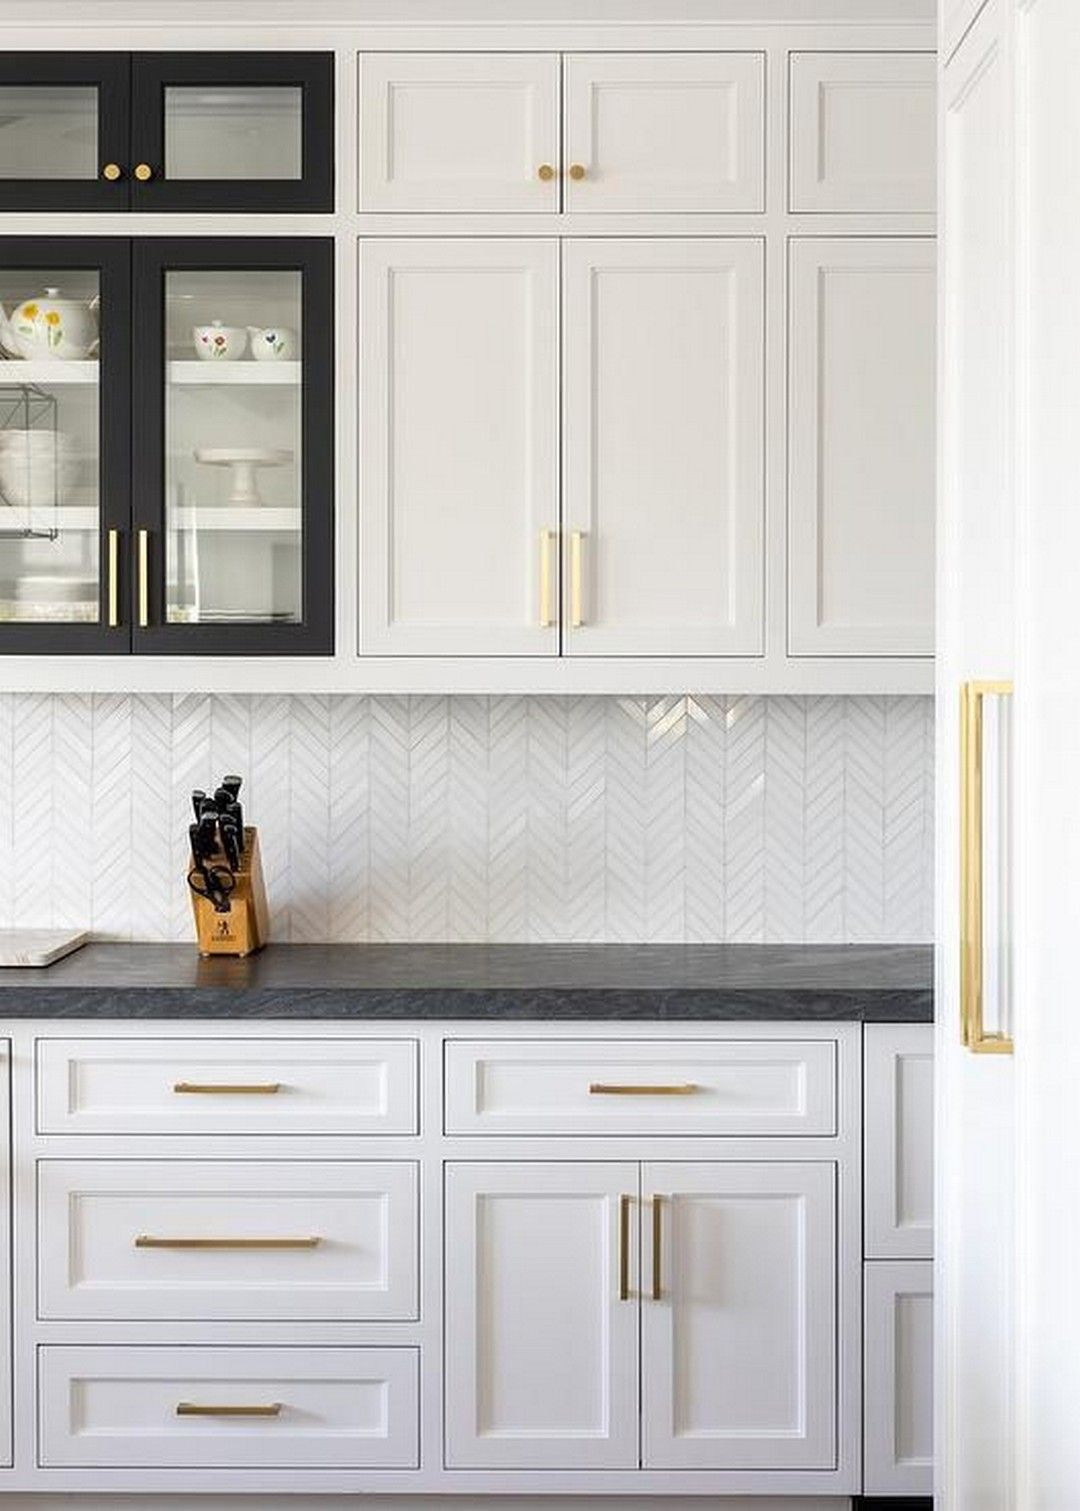 Learn How To Raise Kitchen Cabinets To The Ceiling And Add A Floating Shelf Underneath To Maxi In 2020 White Kitchen Design White Shaker Kitchen Kitchen Cabinet Design